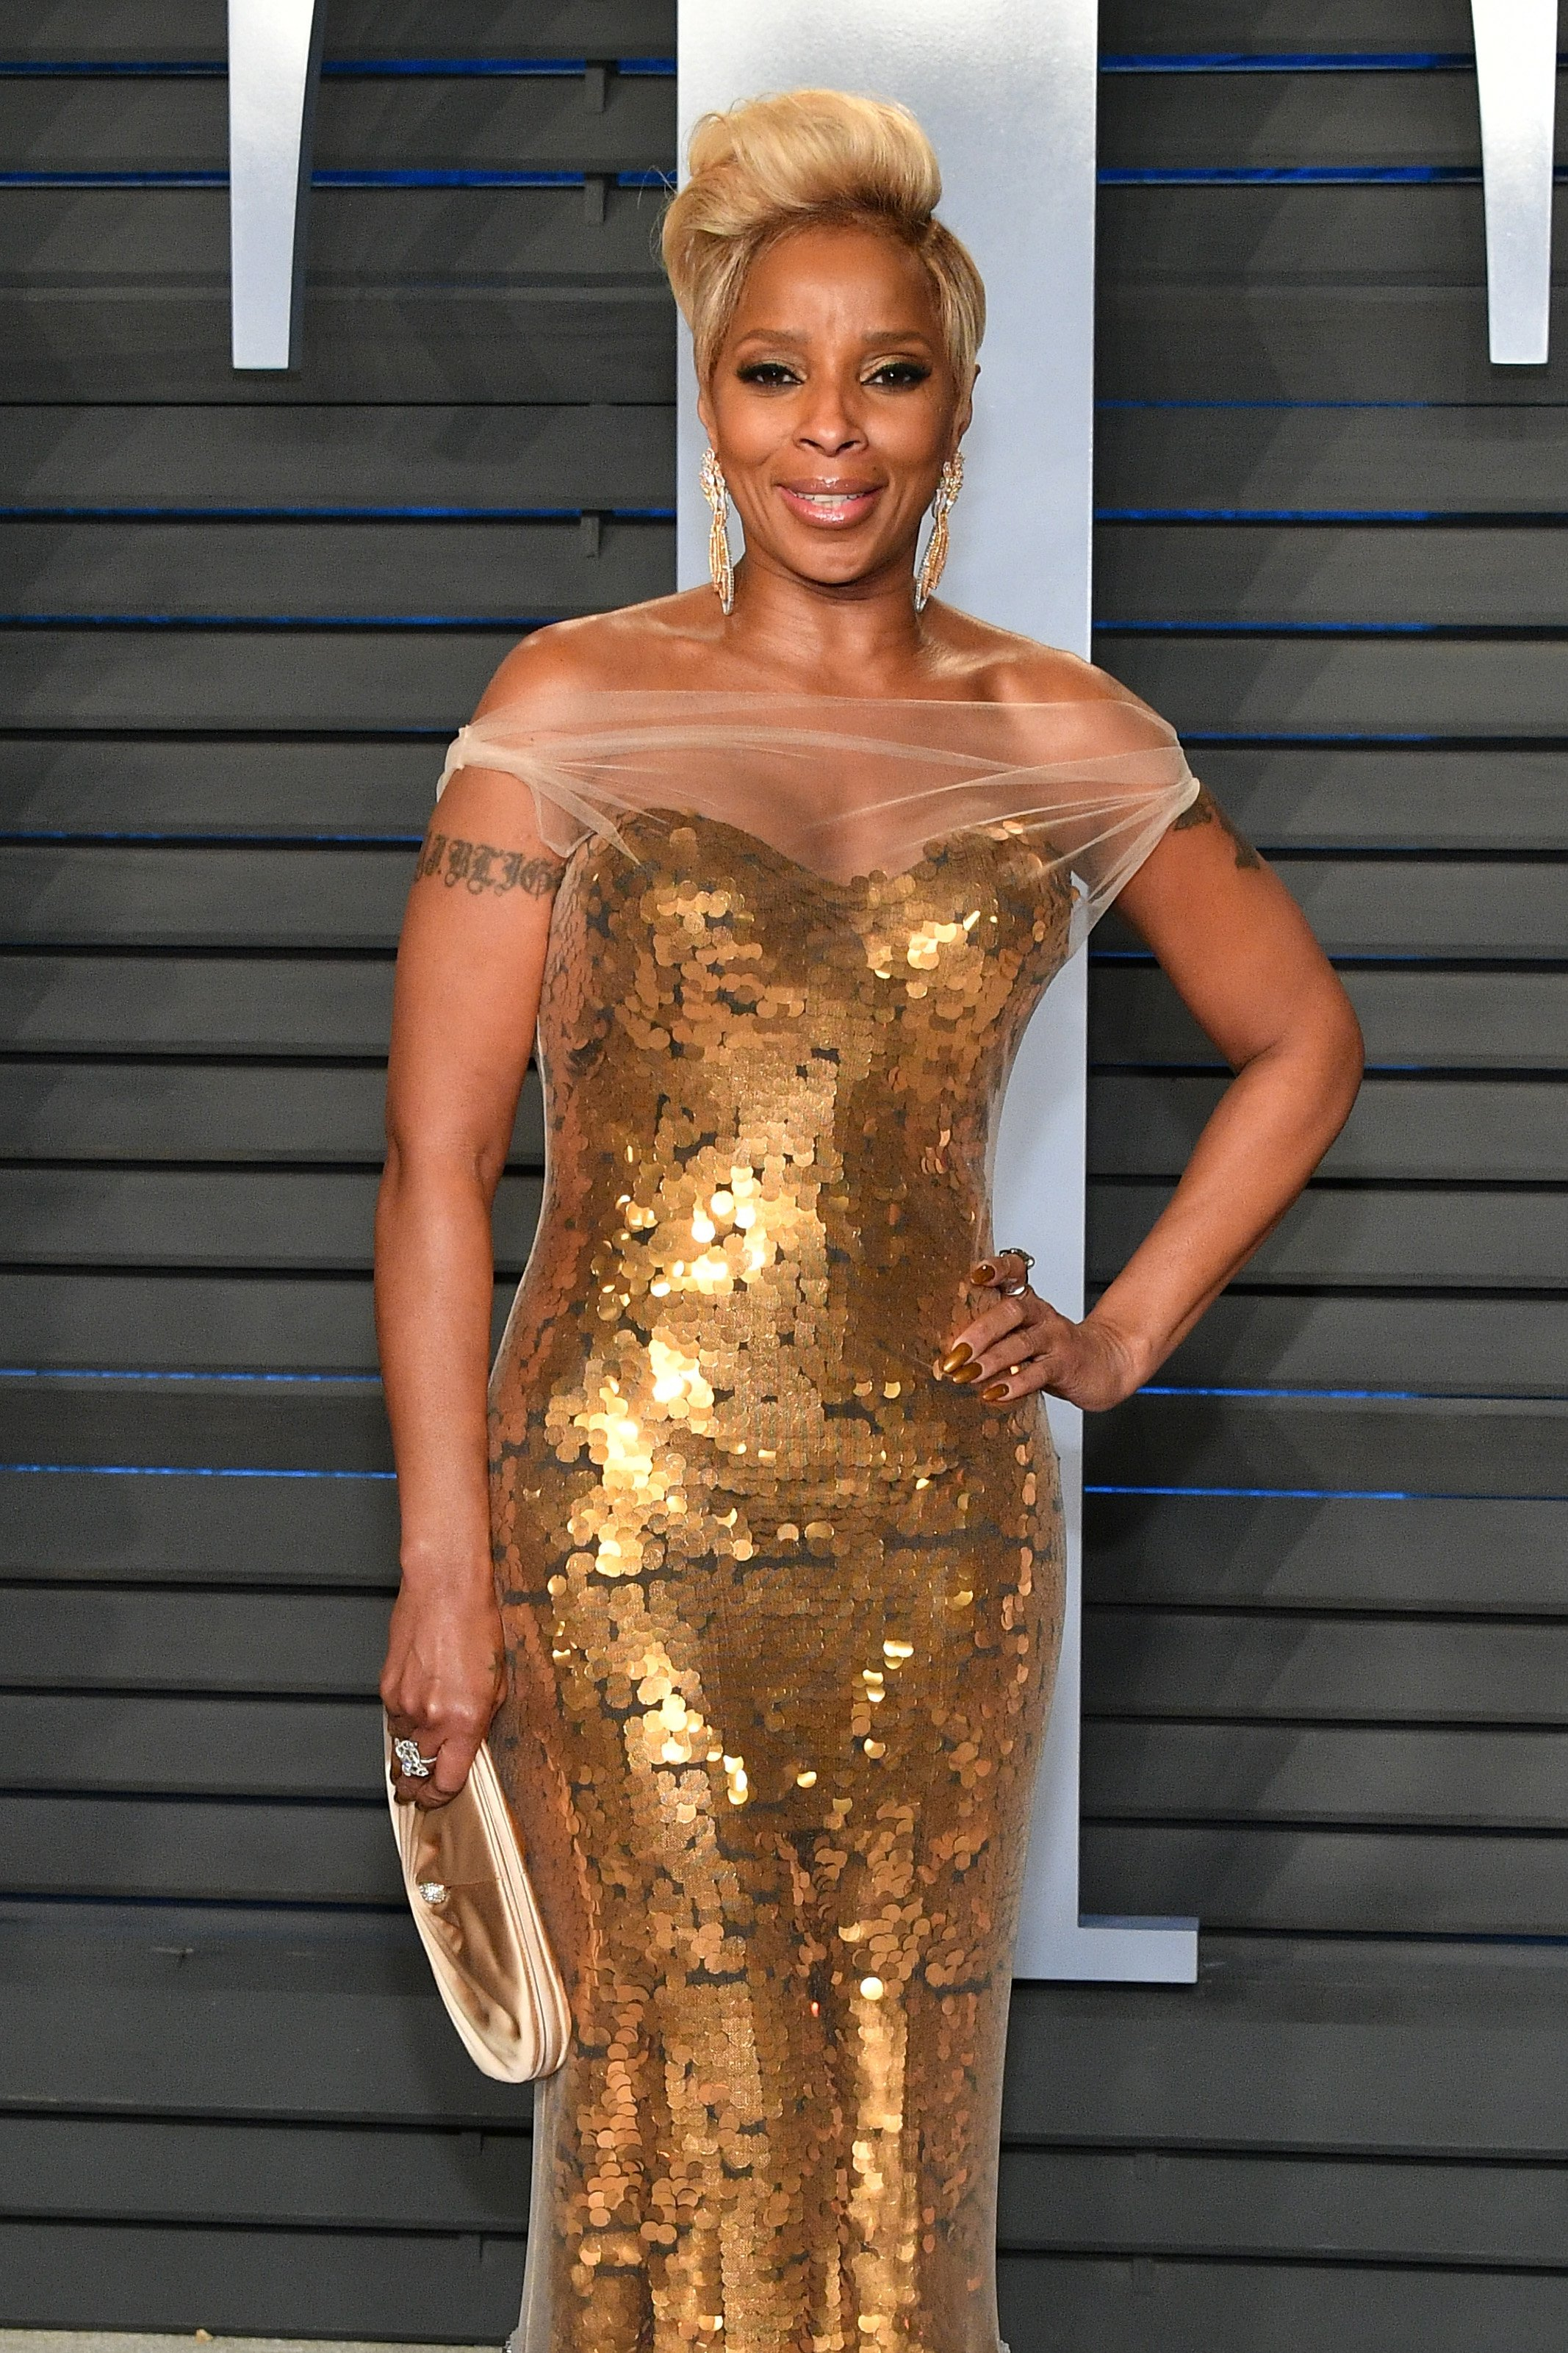 Mary J. Blige at the 2018 Vanity Oscar Party in Beverly Hills, Califorrnia in March 2018. | Photo: Getty Images